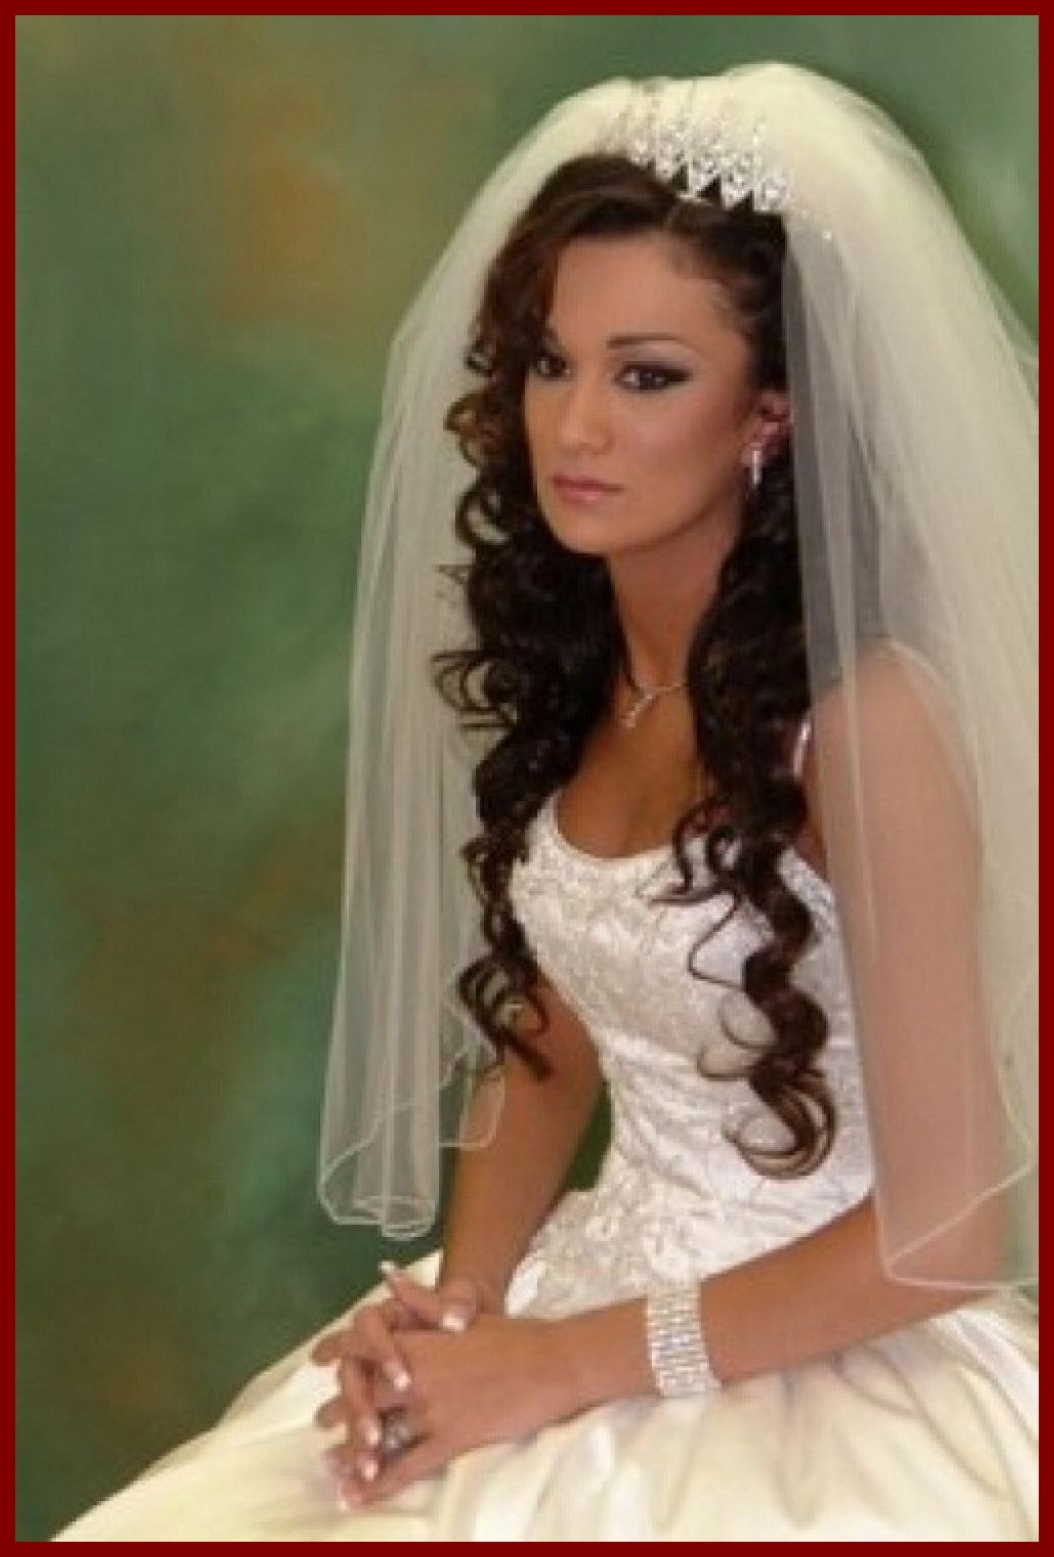 Amazing Wedding Hairstyles Updo With Veil And Image For Long Hair Regarding Current Wedding Updos For Long Hair With Tiara (Gallery 14 of 15)